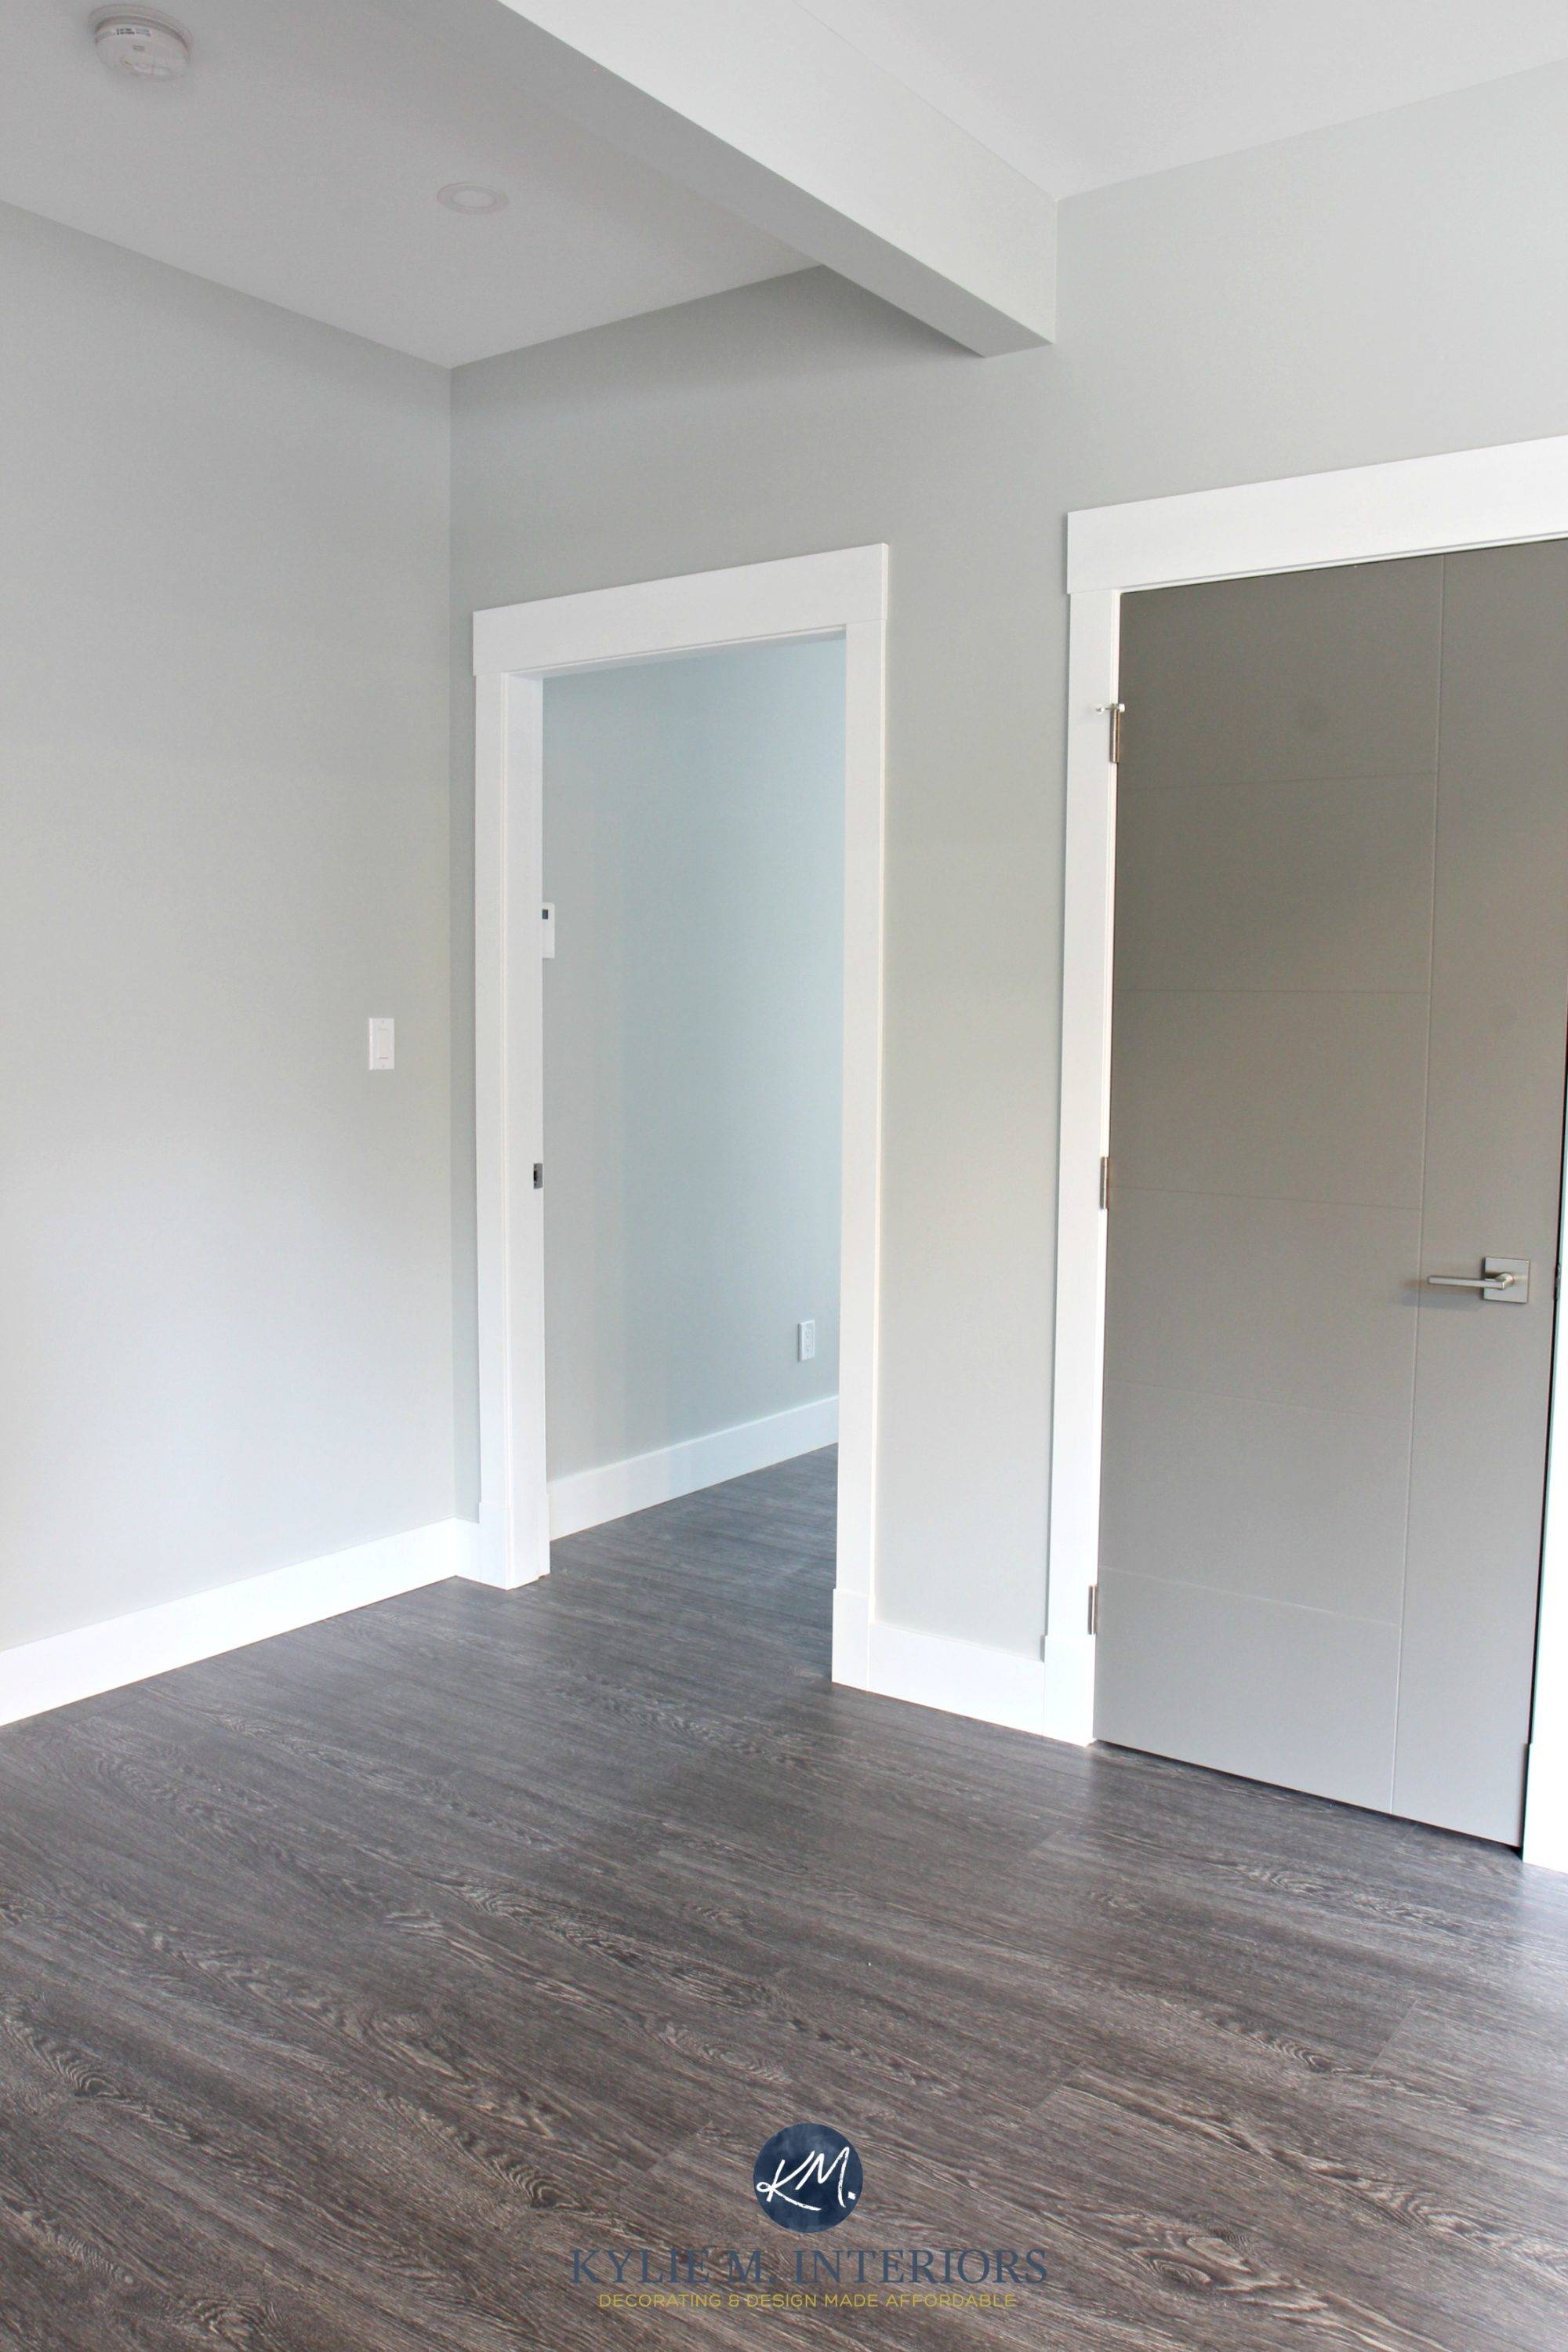 Benjamin Moore Stonington Gray hallway with white trim and Chelsea Gray painted door Kylie M Interiors Colour Consultant online Copy